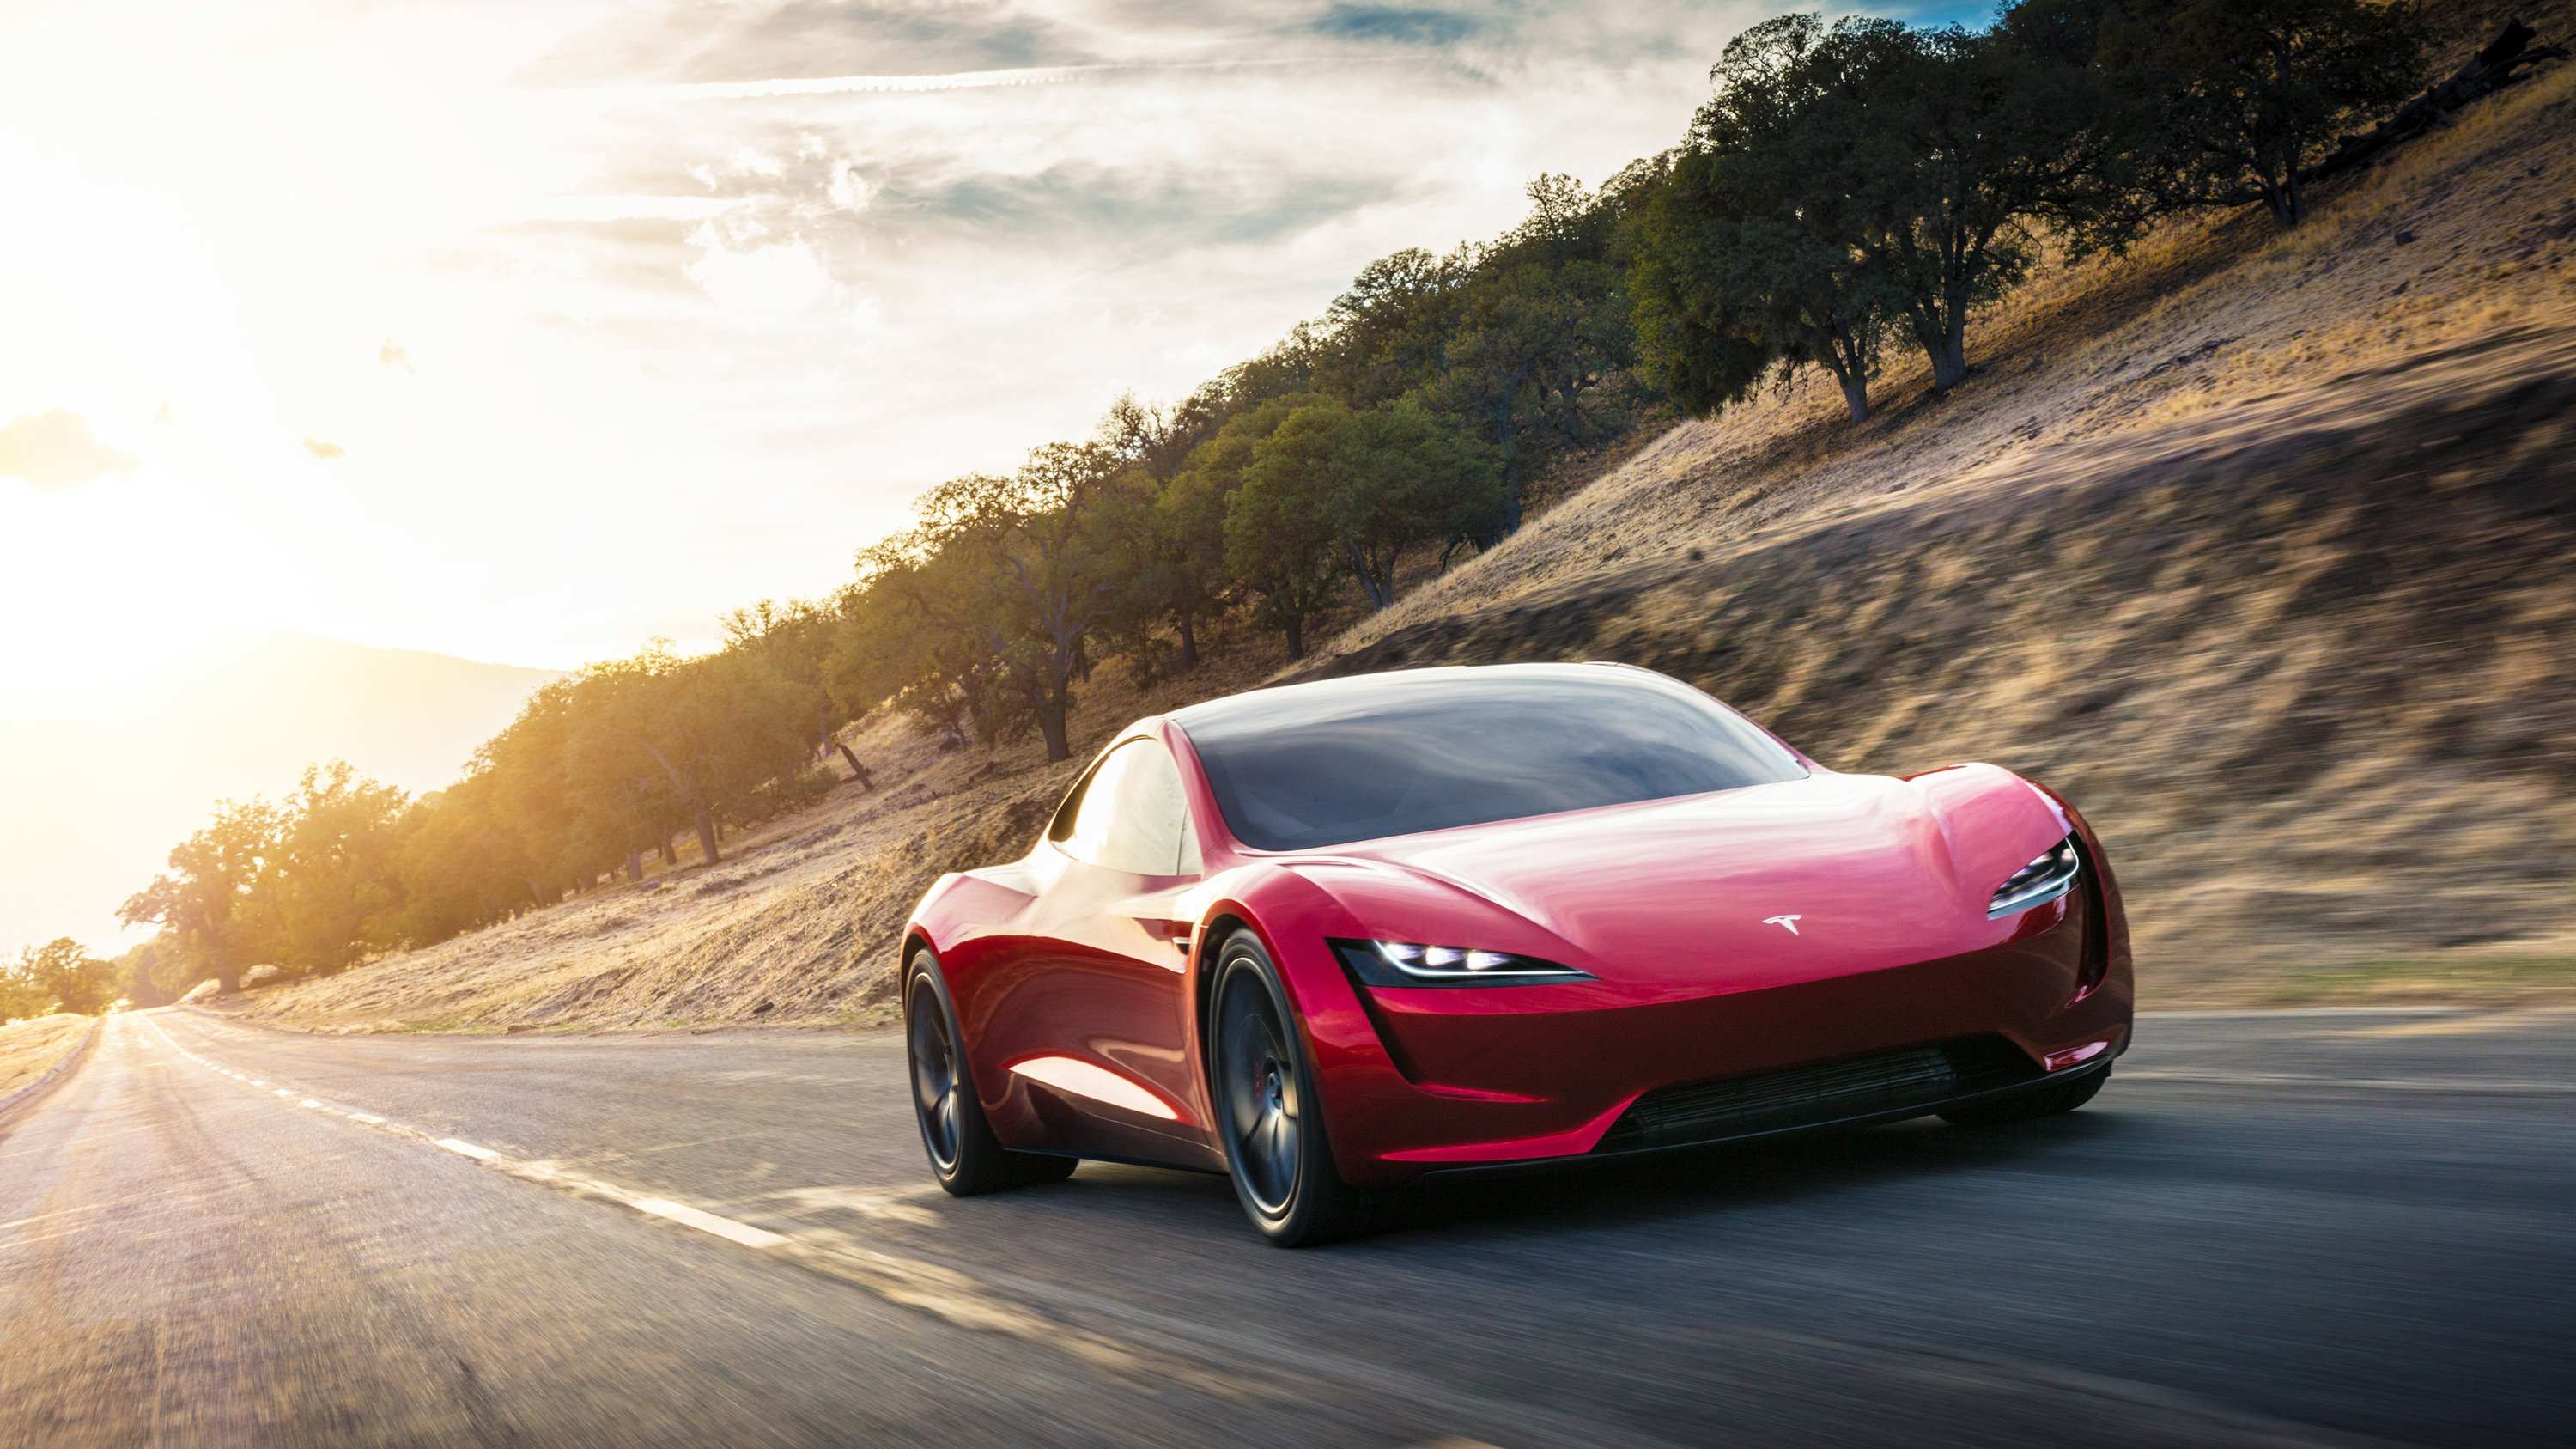 38 All New 2020 Tesla Roadster Dimensions Price for 2020 Tesla Roadster Dimensions